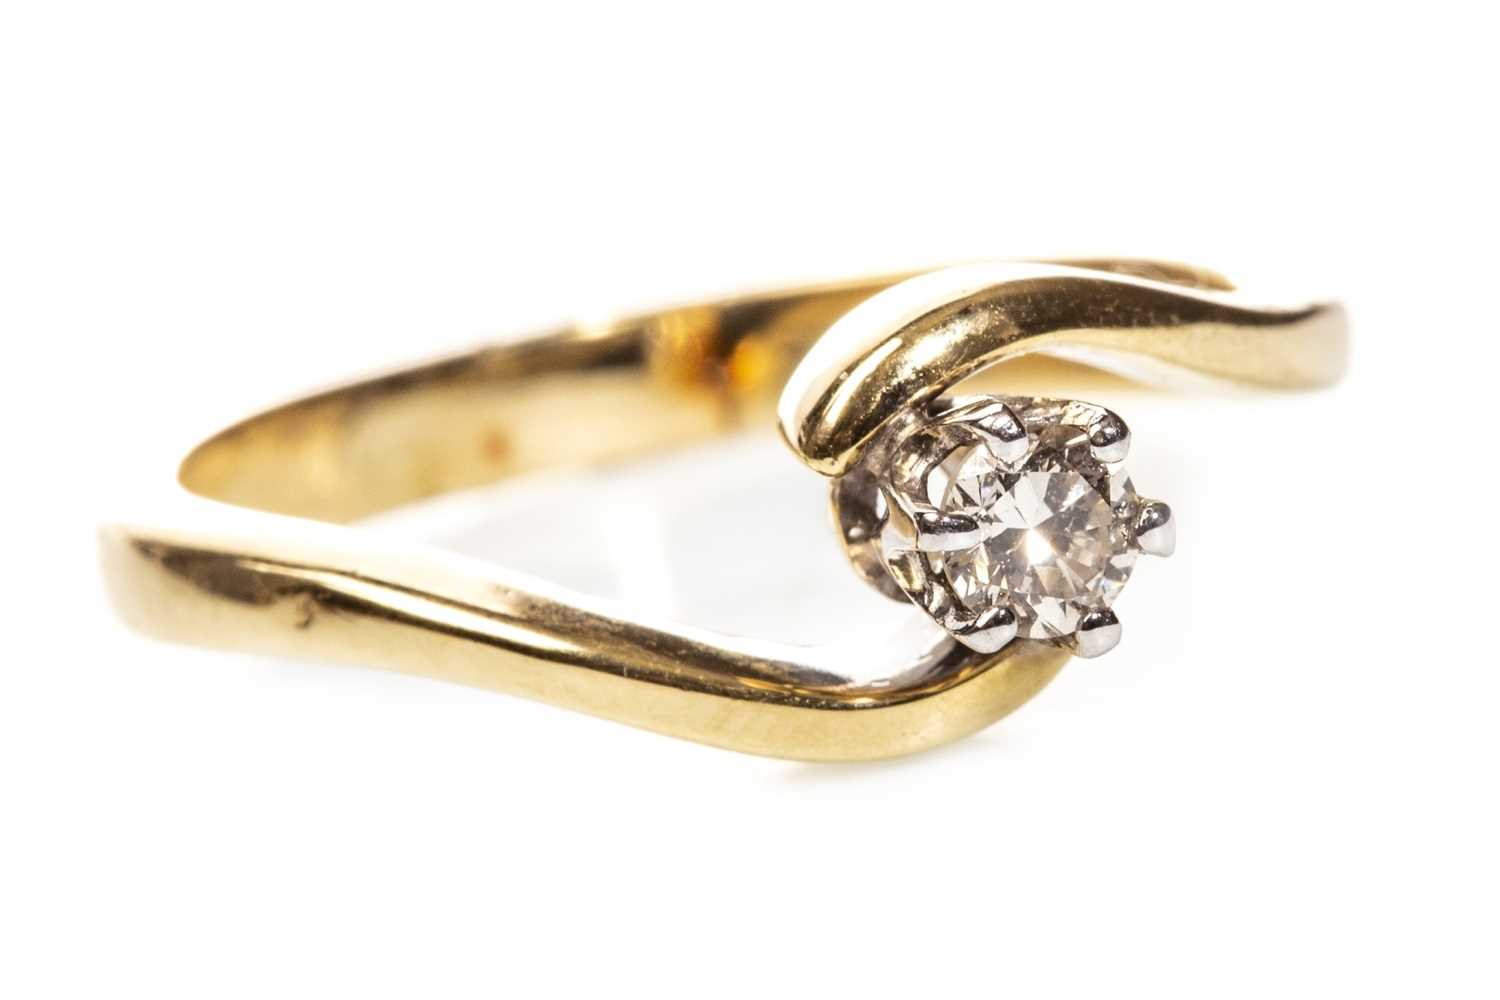 Lot 120 - A DIAMOND SOLITAIRE RING